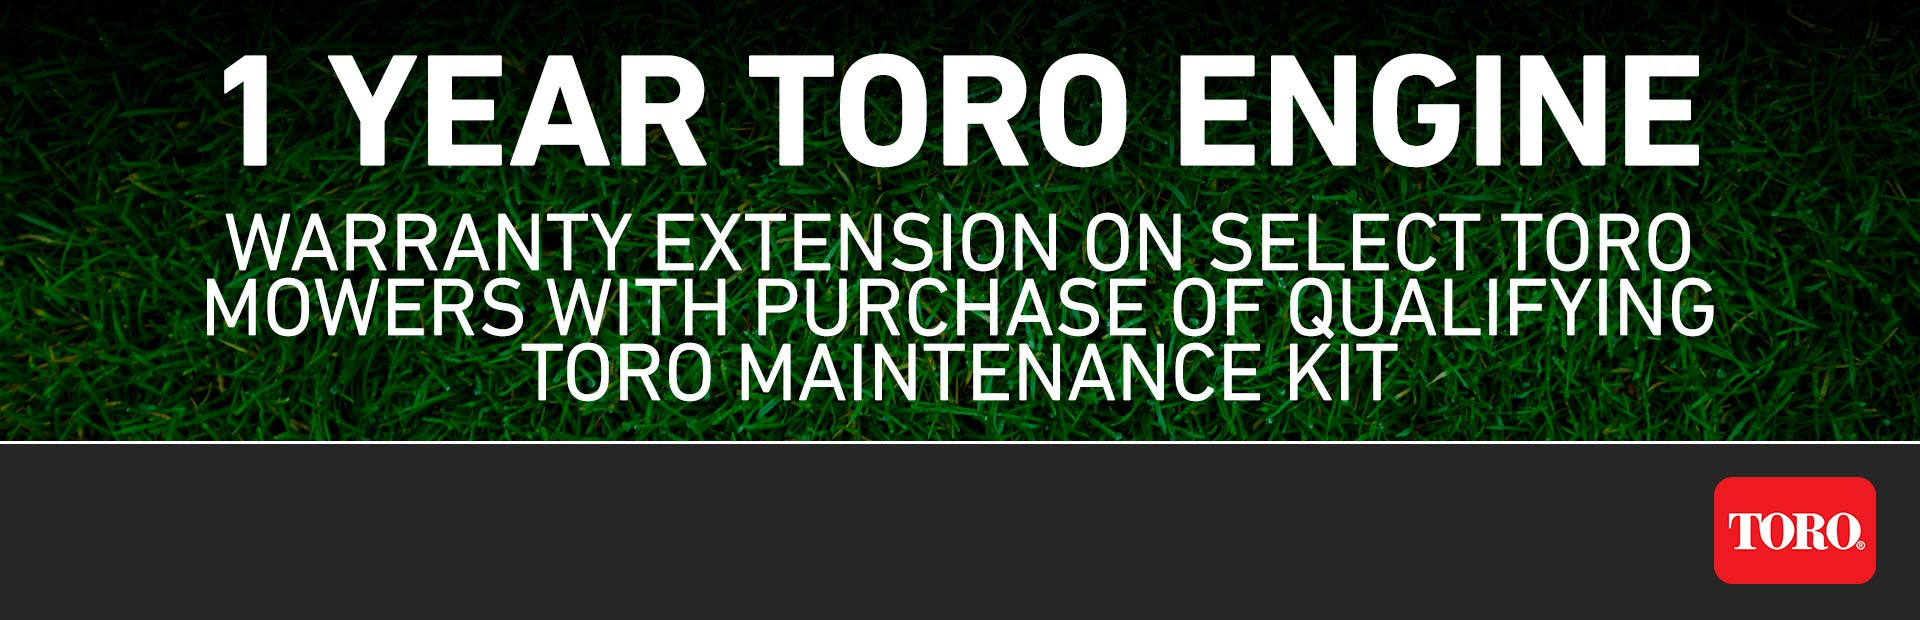 Toro: LS - FREE 1-Year Toro Engine Warranty